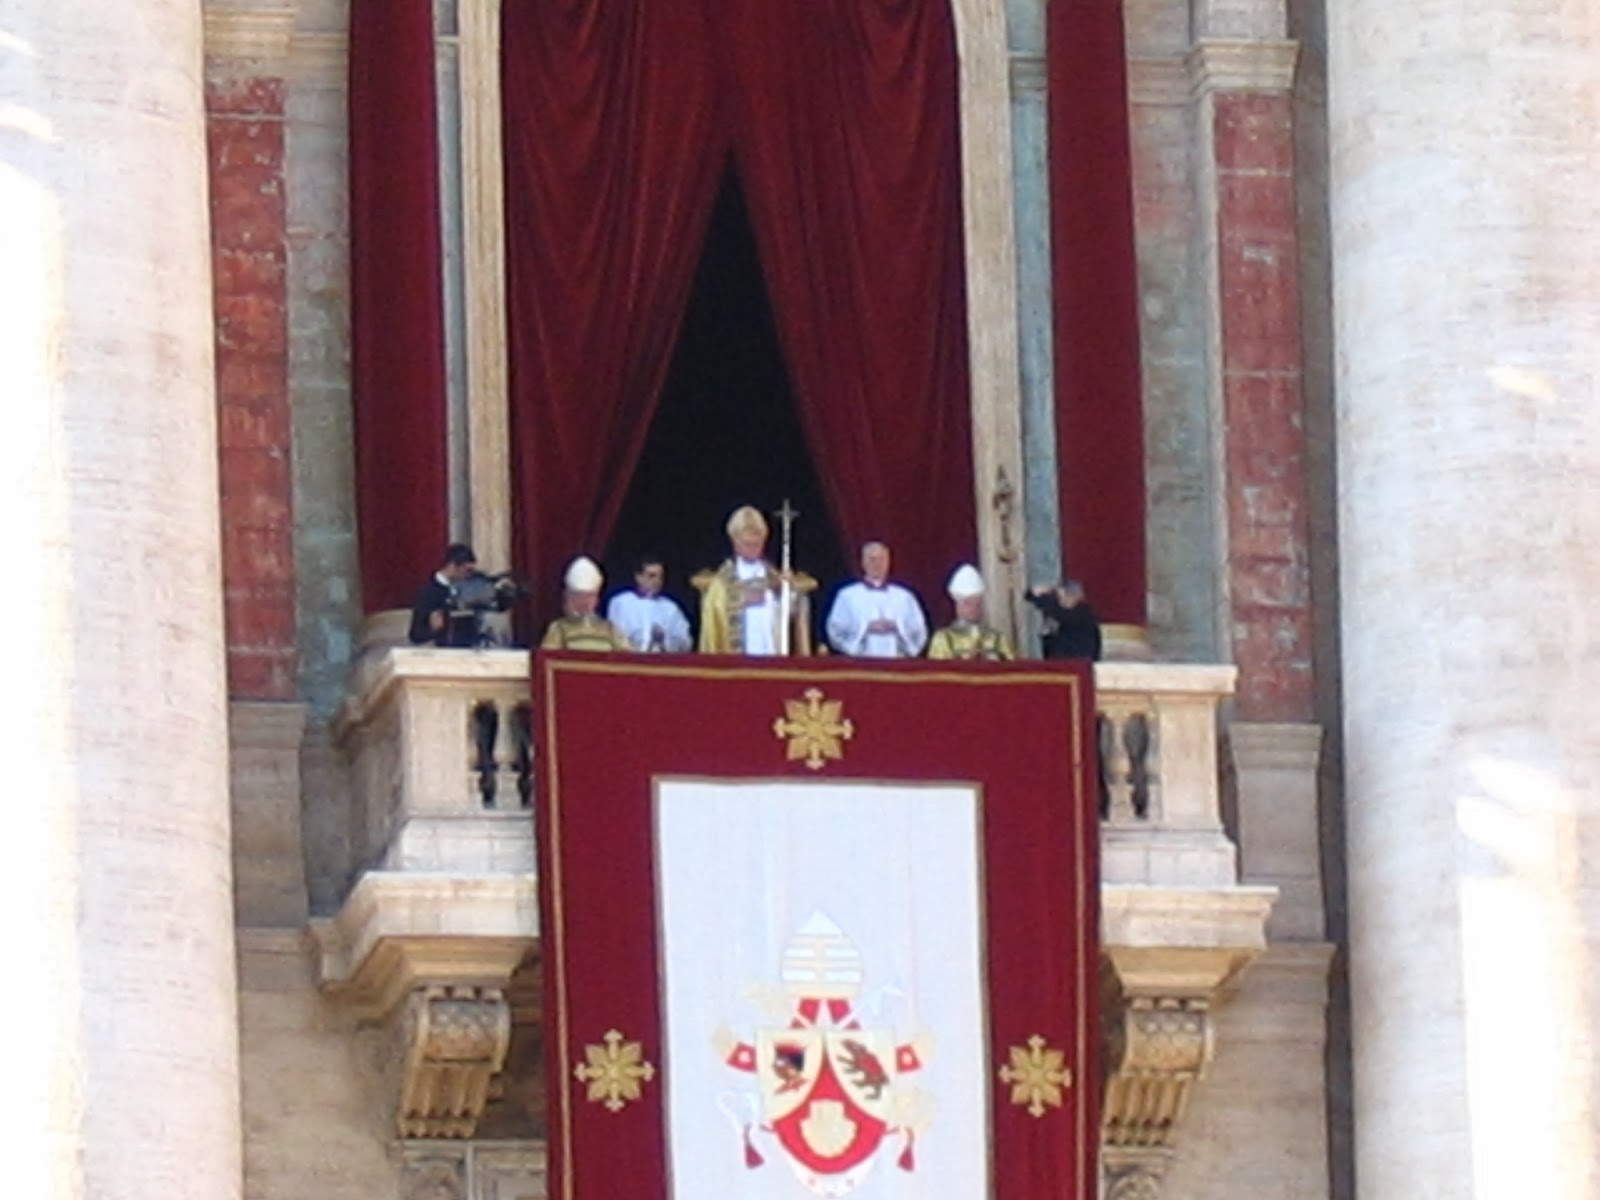 The Pope addressing the crowd on Christmas Day